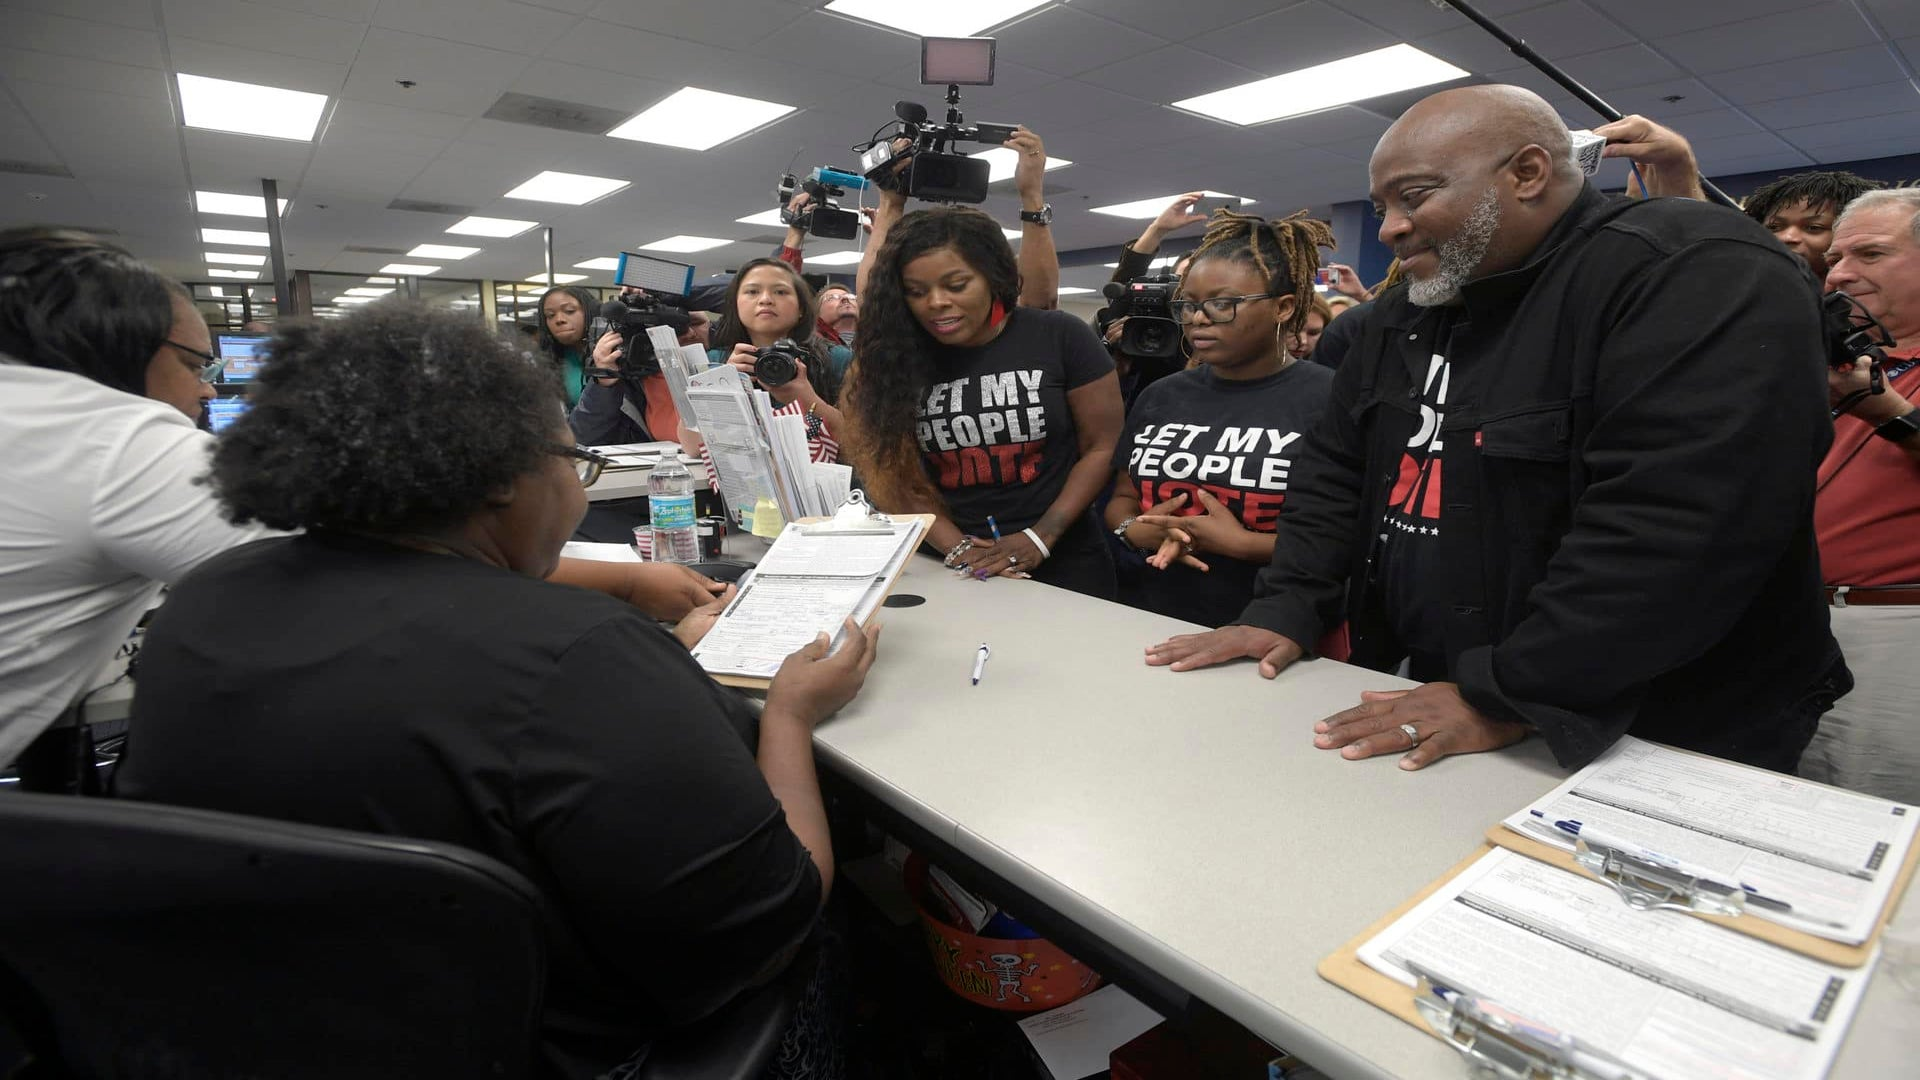 Florida: The Swing State And Its New 1.6 Million Swing Voters